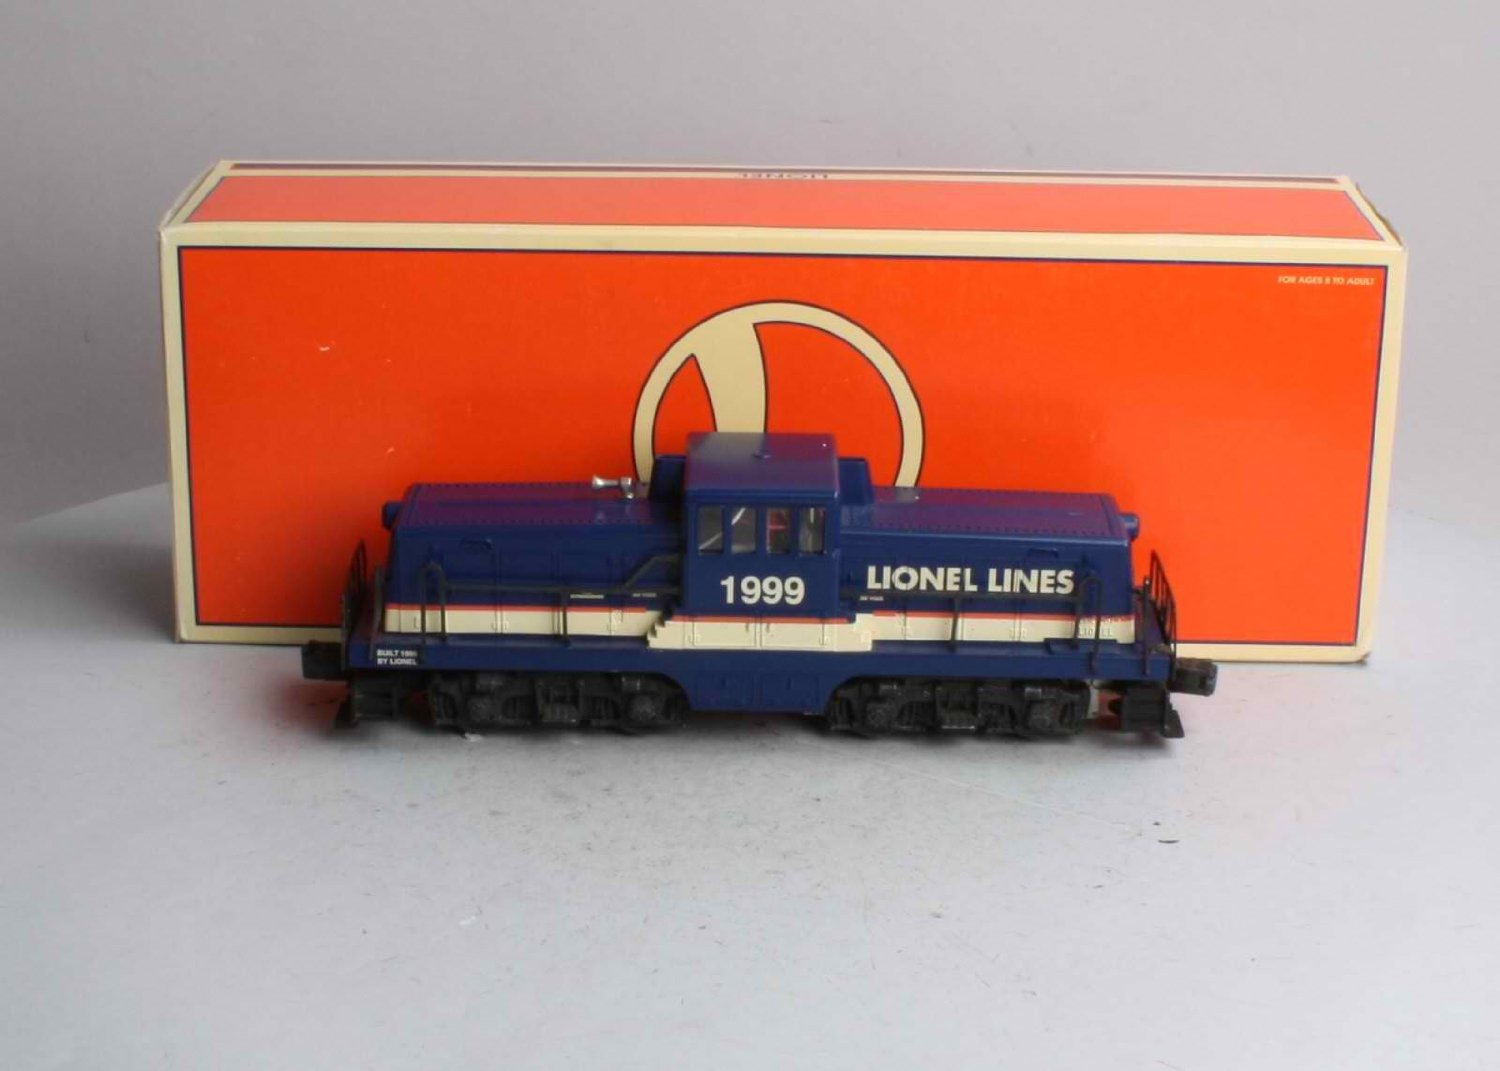 Lionel 6-28801 Lionel Lines 44 Ton Center Cab Switcher